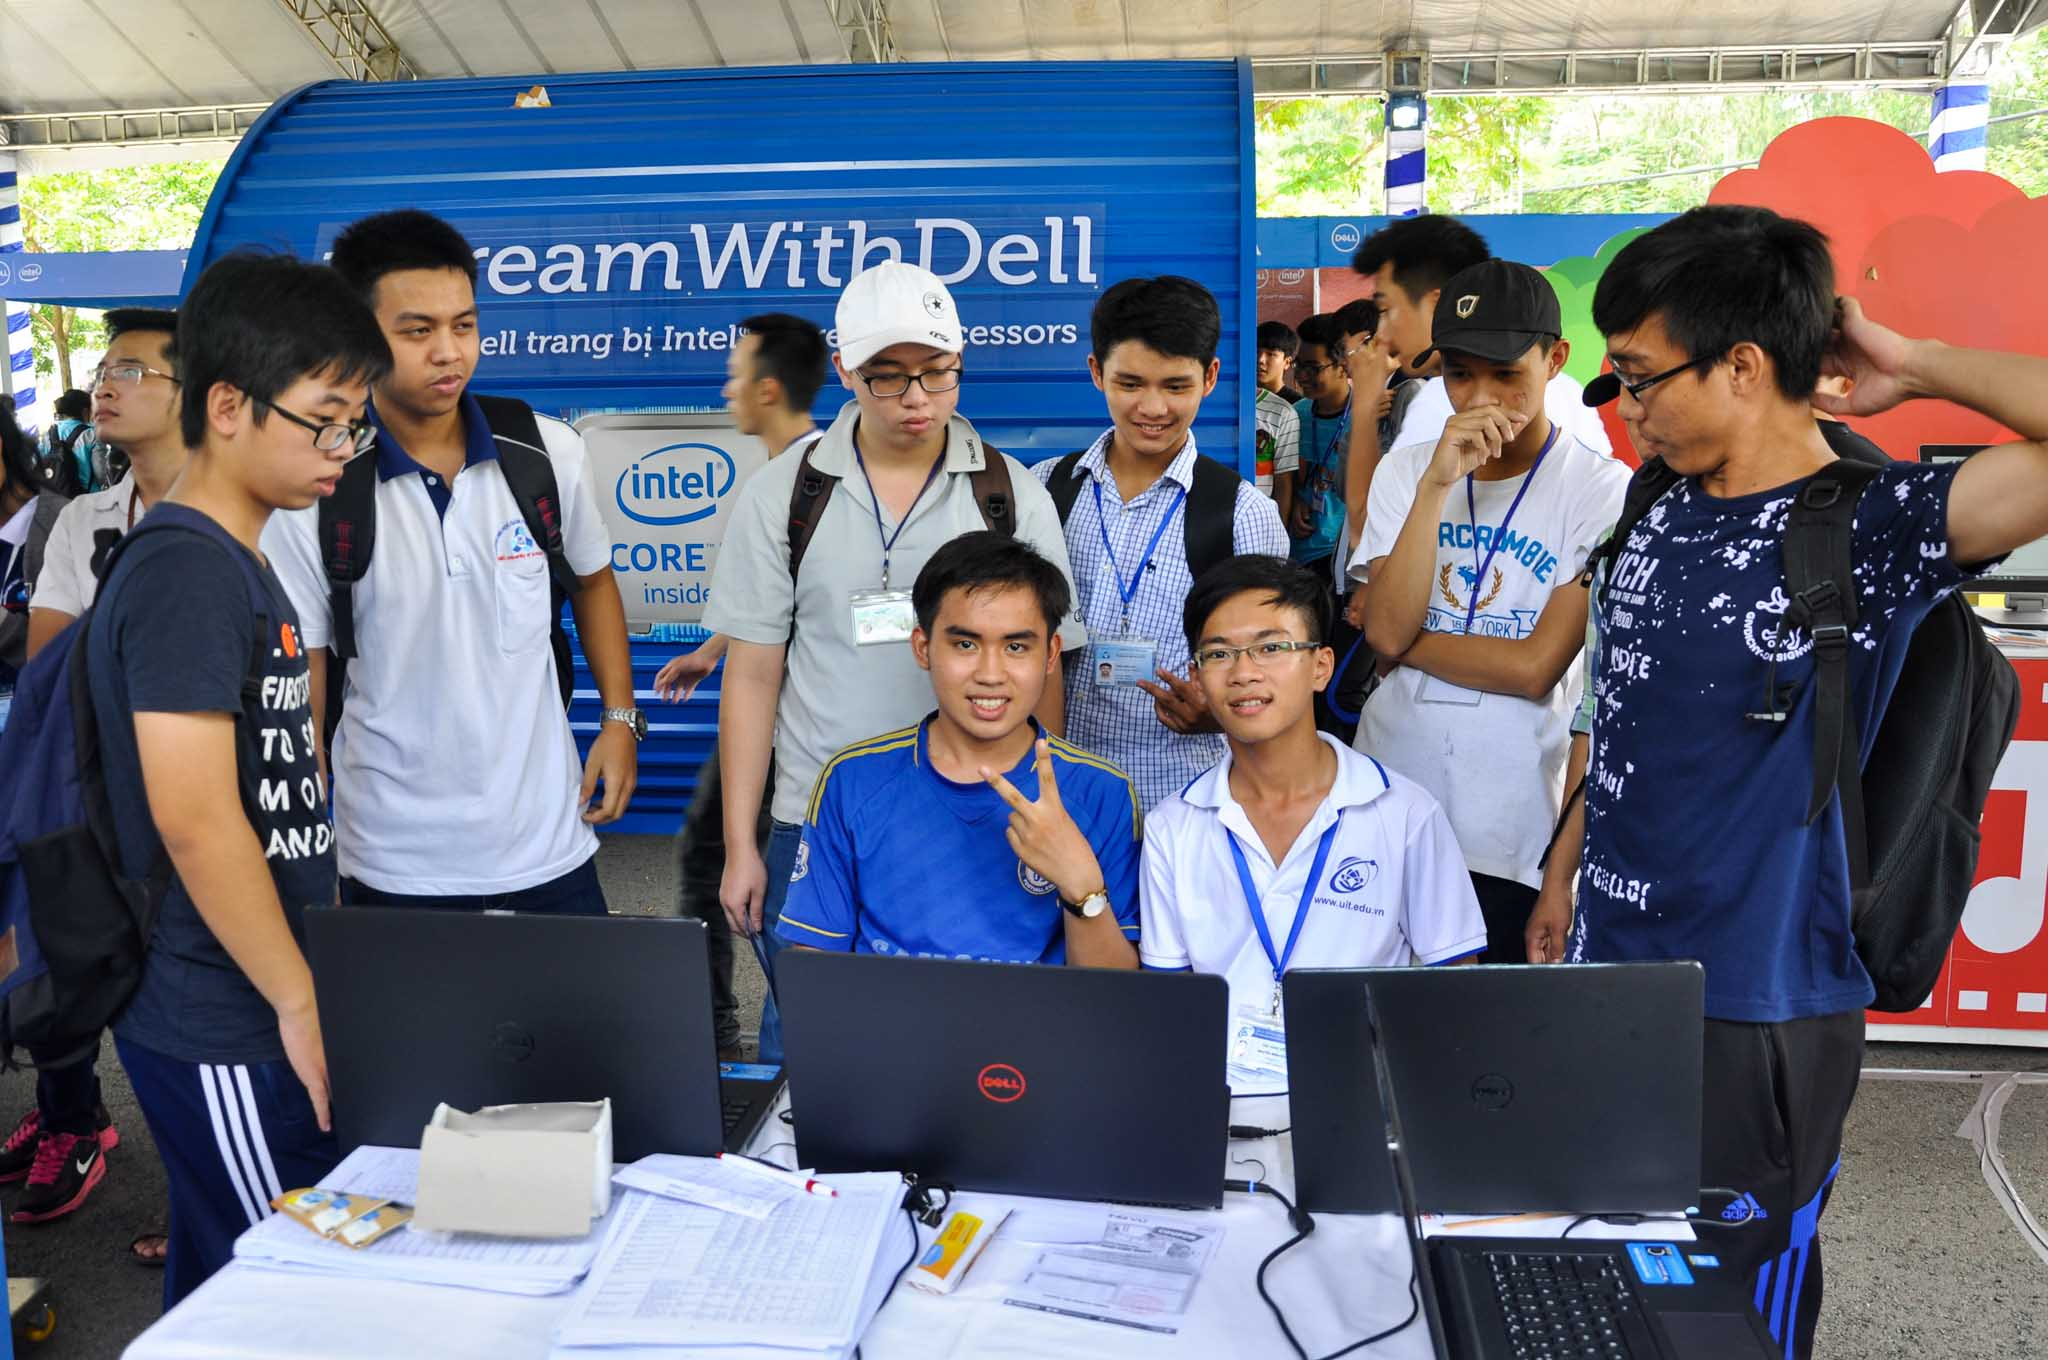 Dream with Dell_tinhte.vn 1.jpg